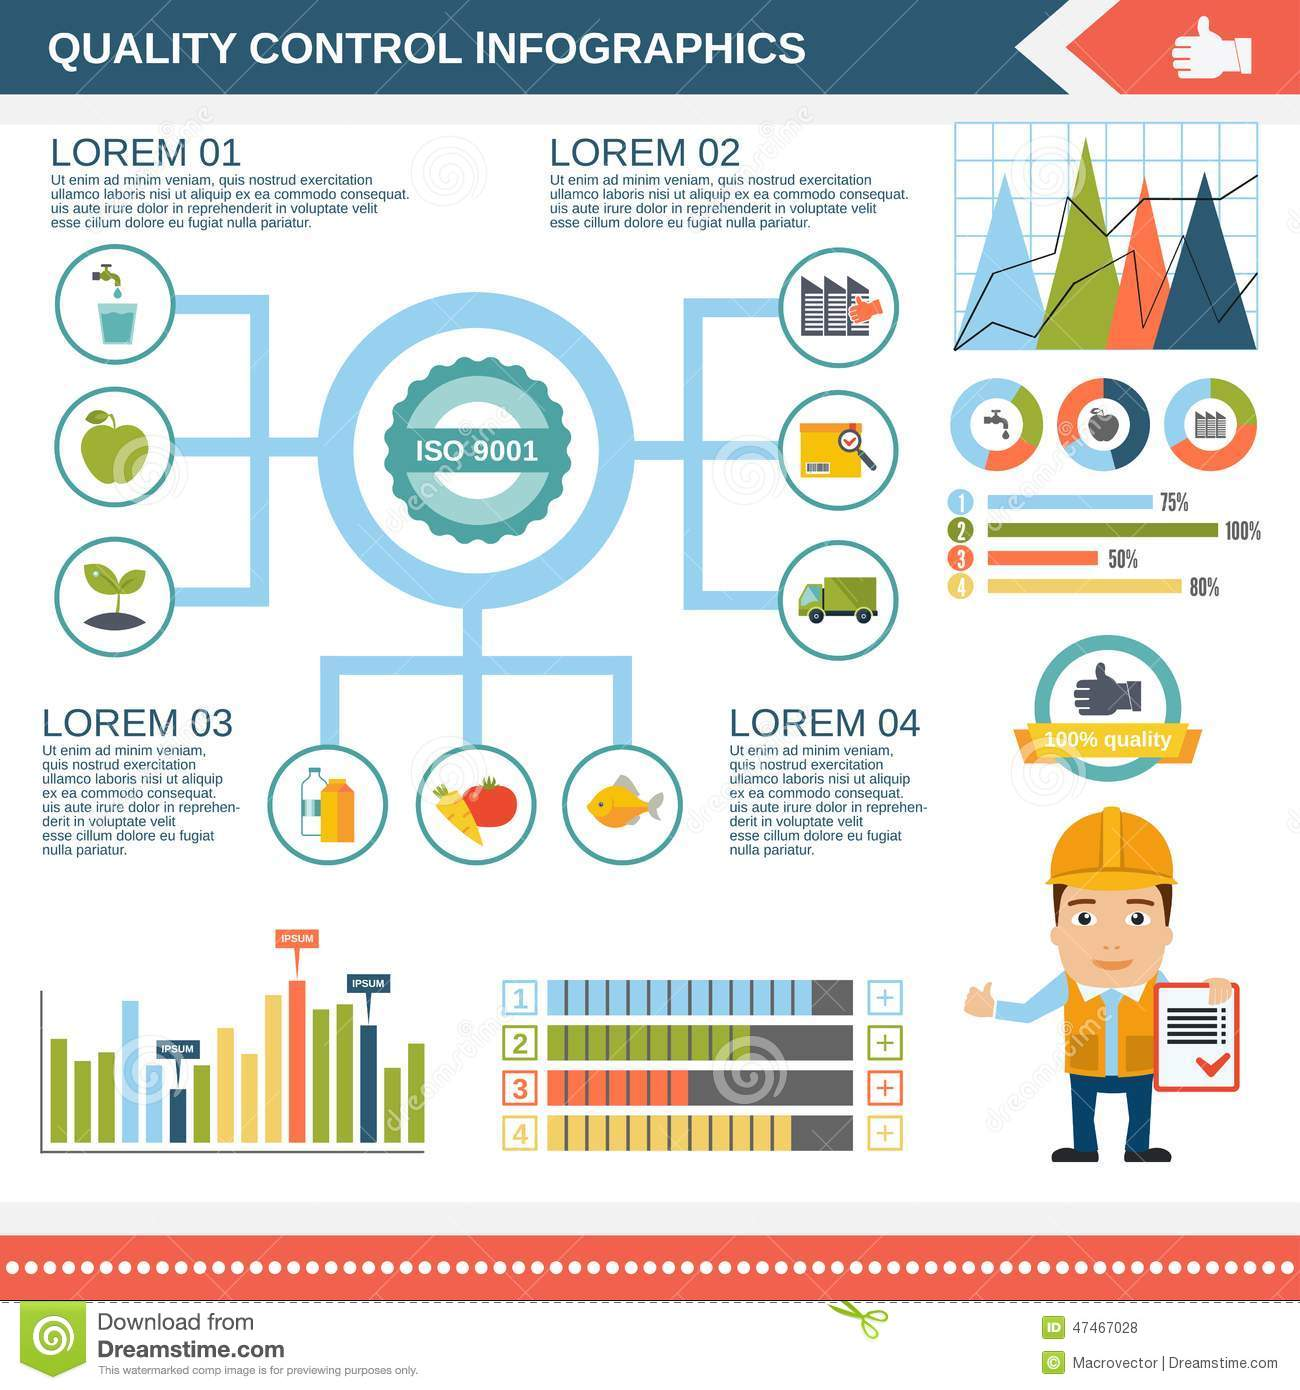 Quality Control Infographic Illustration 47467028 - Megapixl